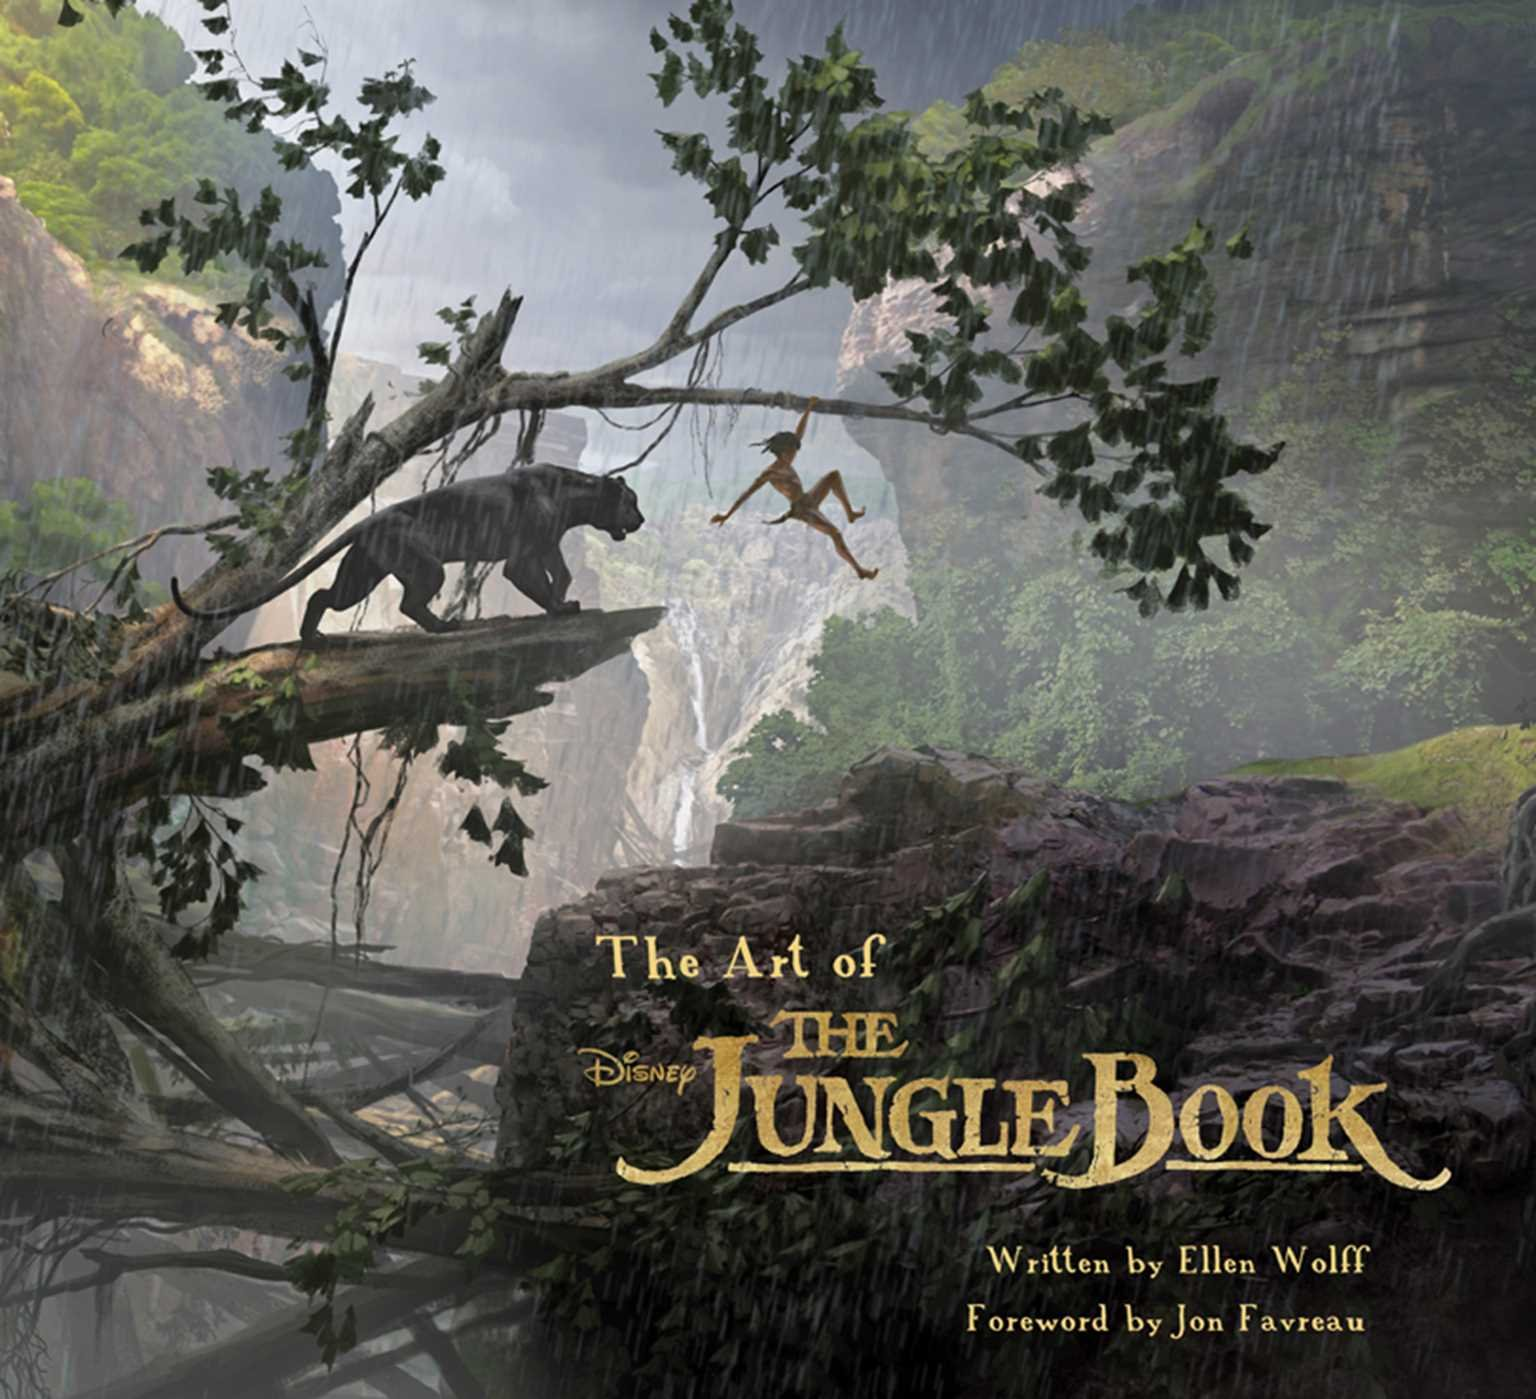 Of Jungle Book